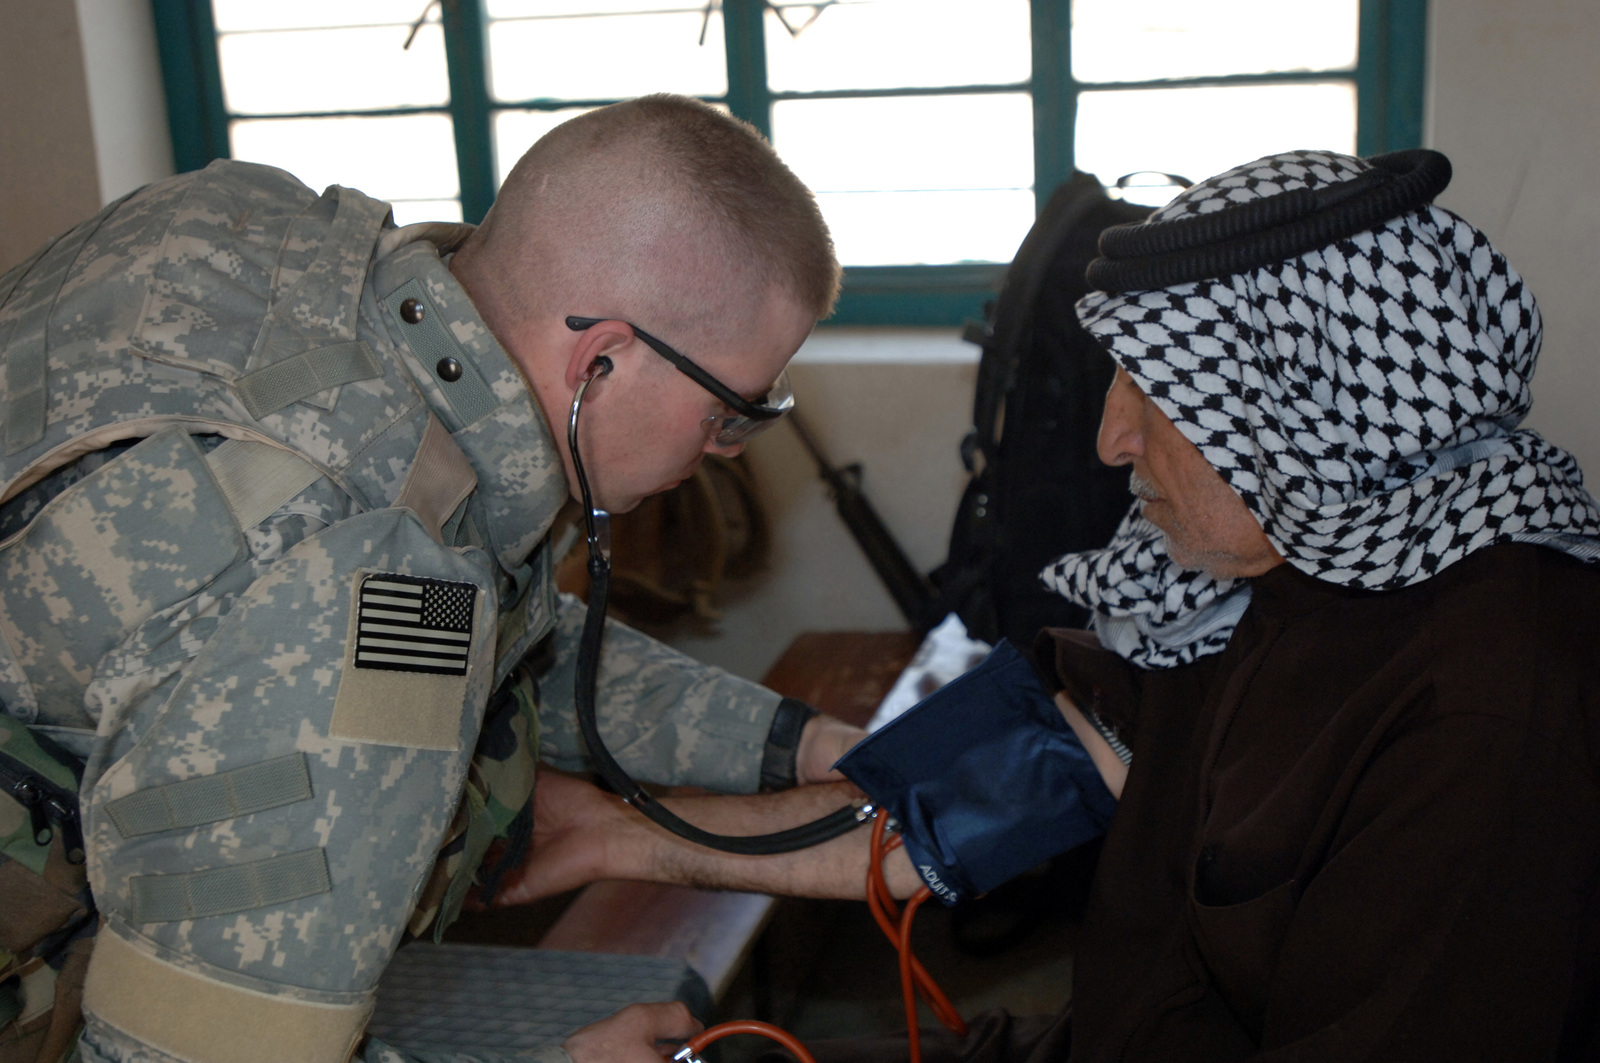 On March 8, 2006, U.S. Soldiers from Charlie, 2-22 Infantry on Military Police Liberty and Iraqi soldiers from 3rd Brigade, 6th Iraqi Army Division located on Forward Operating Base Constitution held a MEDCAP for the people of Al Jaddi Village. The purpose of the operation was to assist with humanity needs of local villagers and develop targetable intelligence. The MEDCAP was held at Al Jeel Al Arahi Primary School (Mix). A PA checks the blood pressure of a patient.(U.S. Army photo by STAFF SGT. Kevin L. Moses Sr.) (Released)